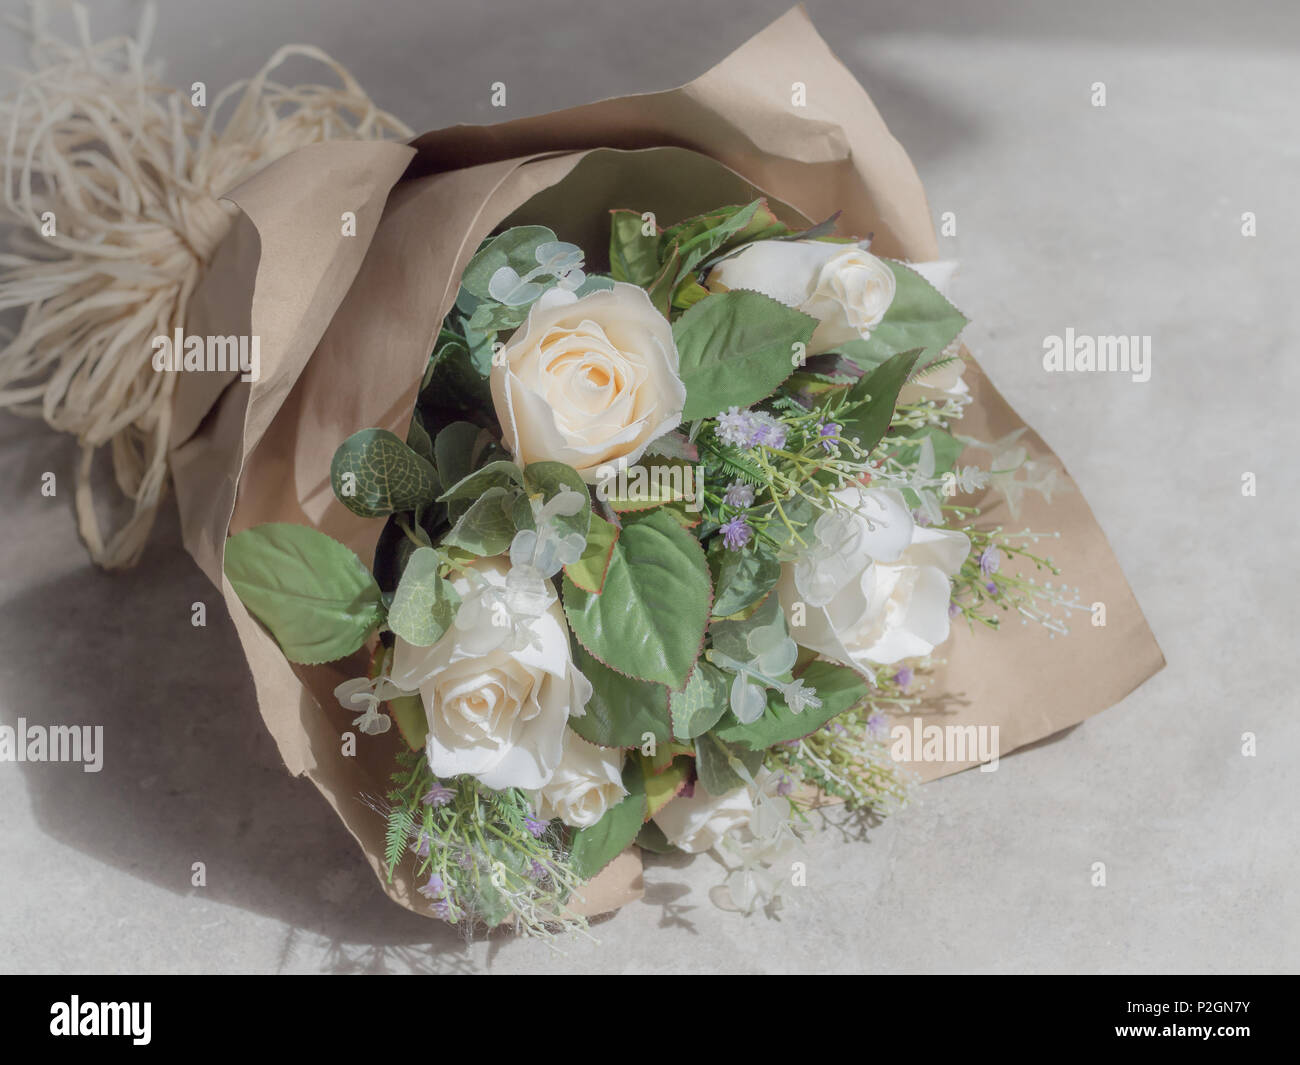 Artificial white roses bouquet in wrapping brown craft paper on artificial white roses bouquet in wrapping brown craft paper on concrete background mightylinksfo